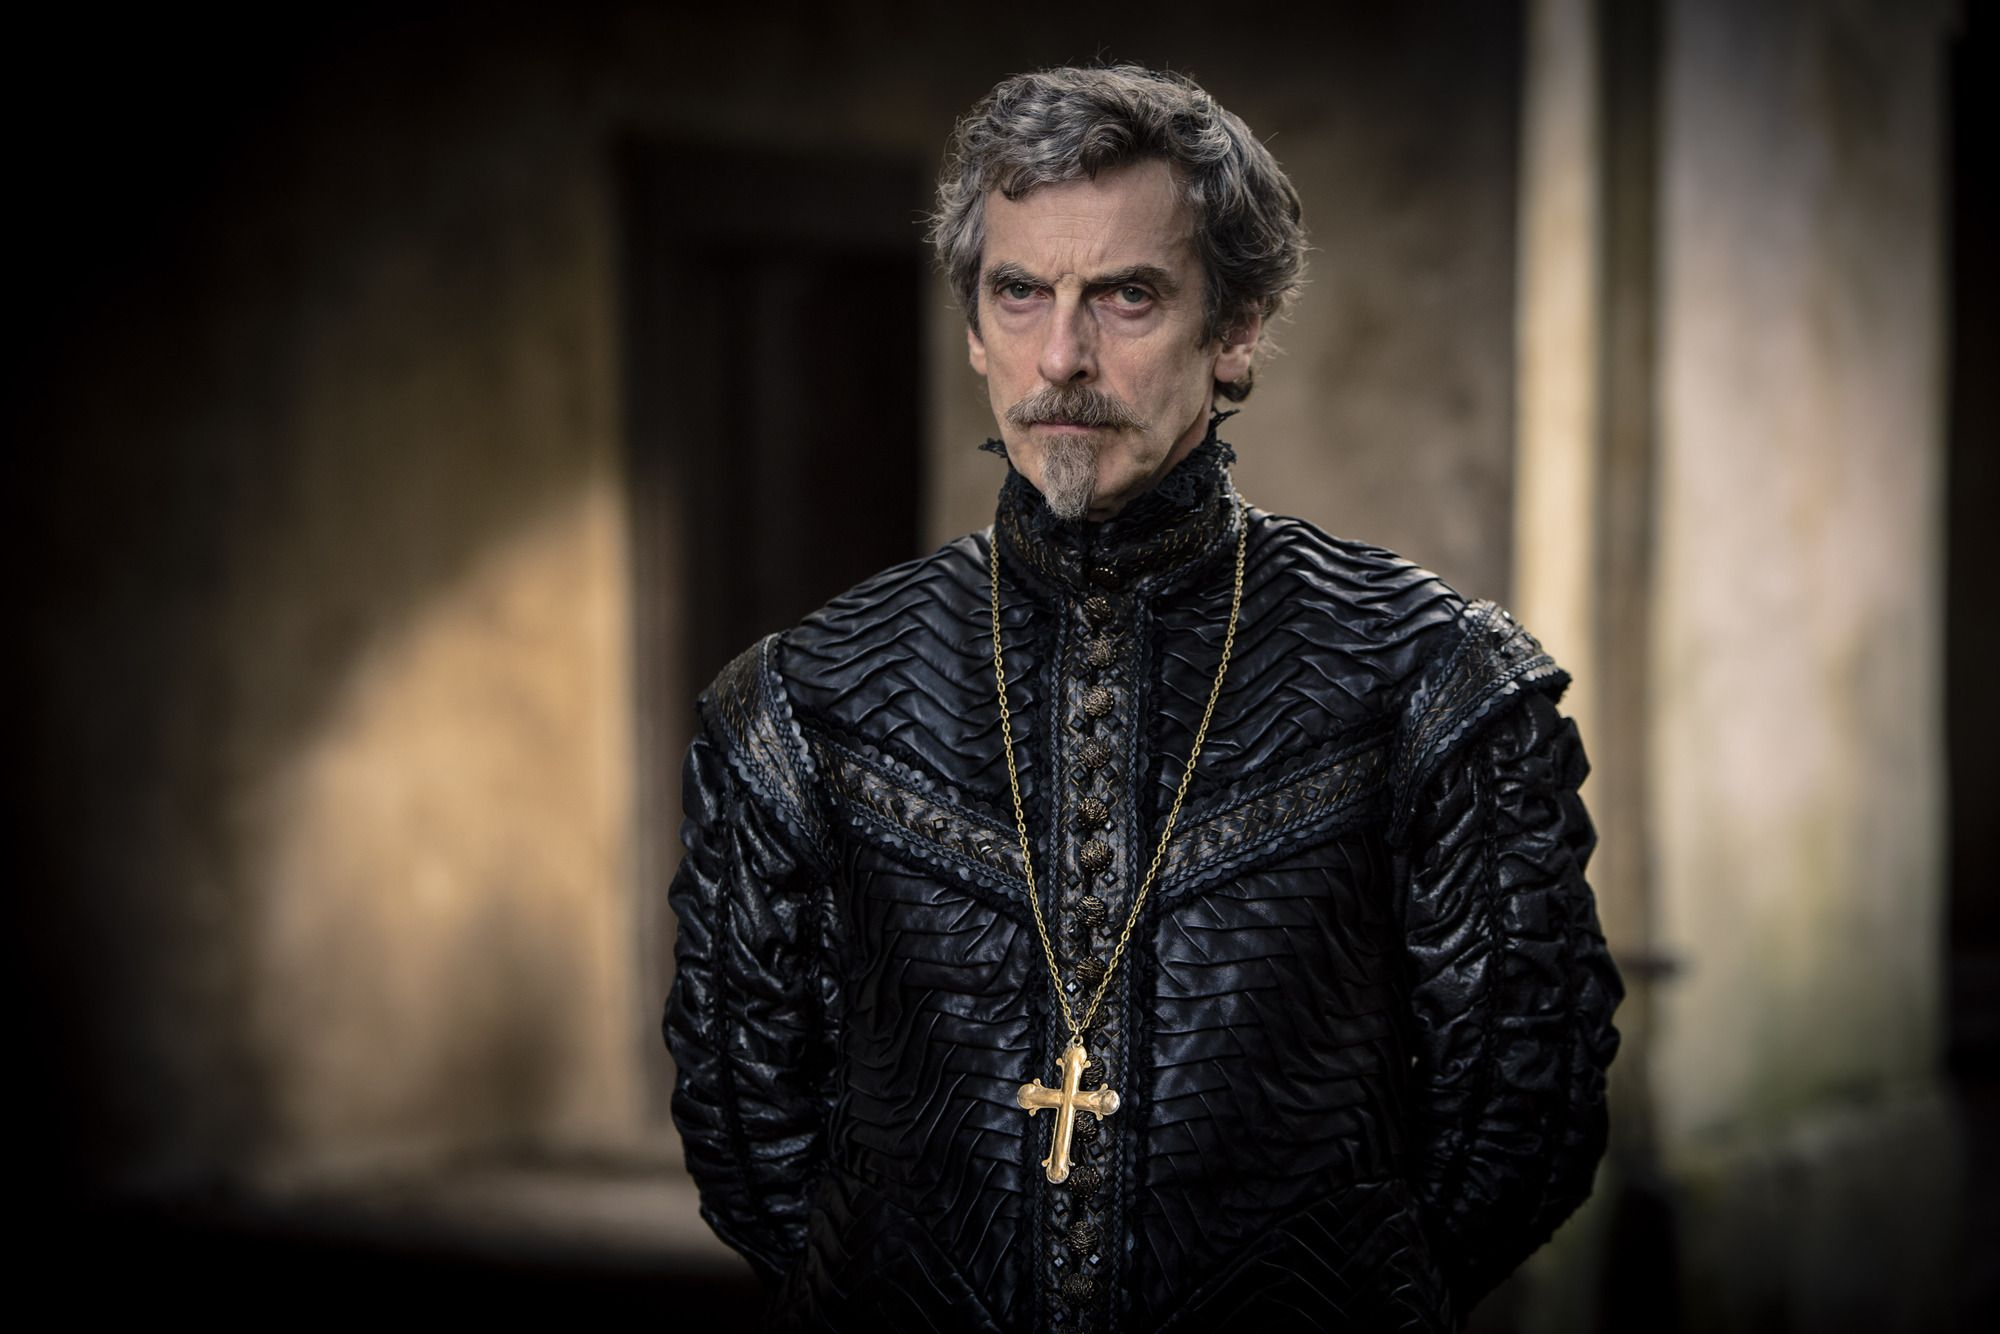 The Musketeers: How did Peter Capaldi do? BBC